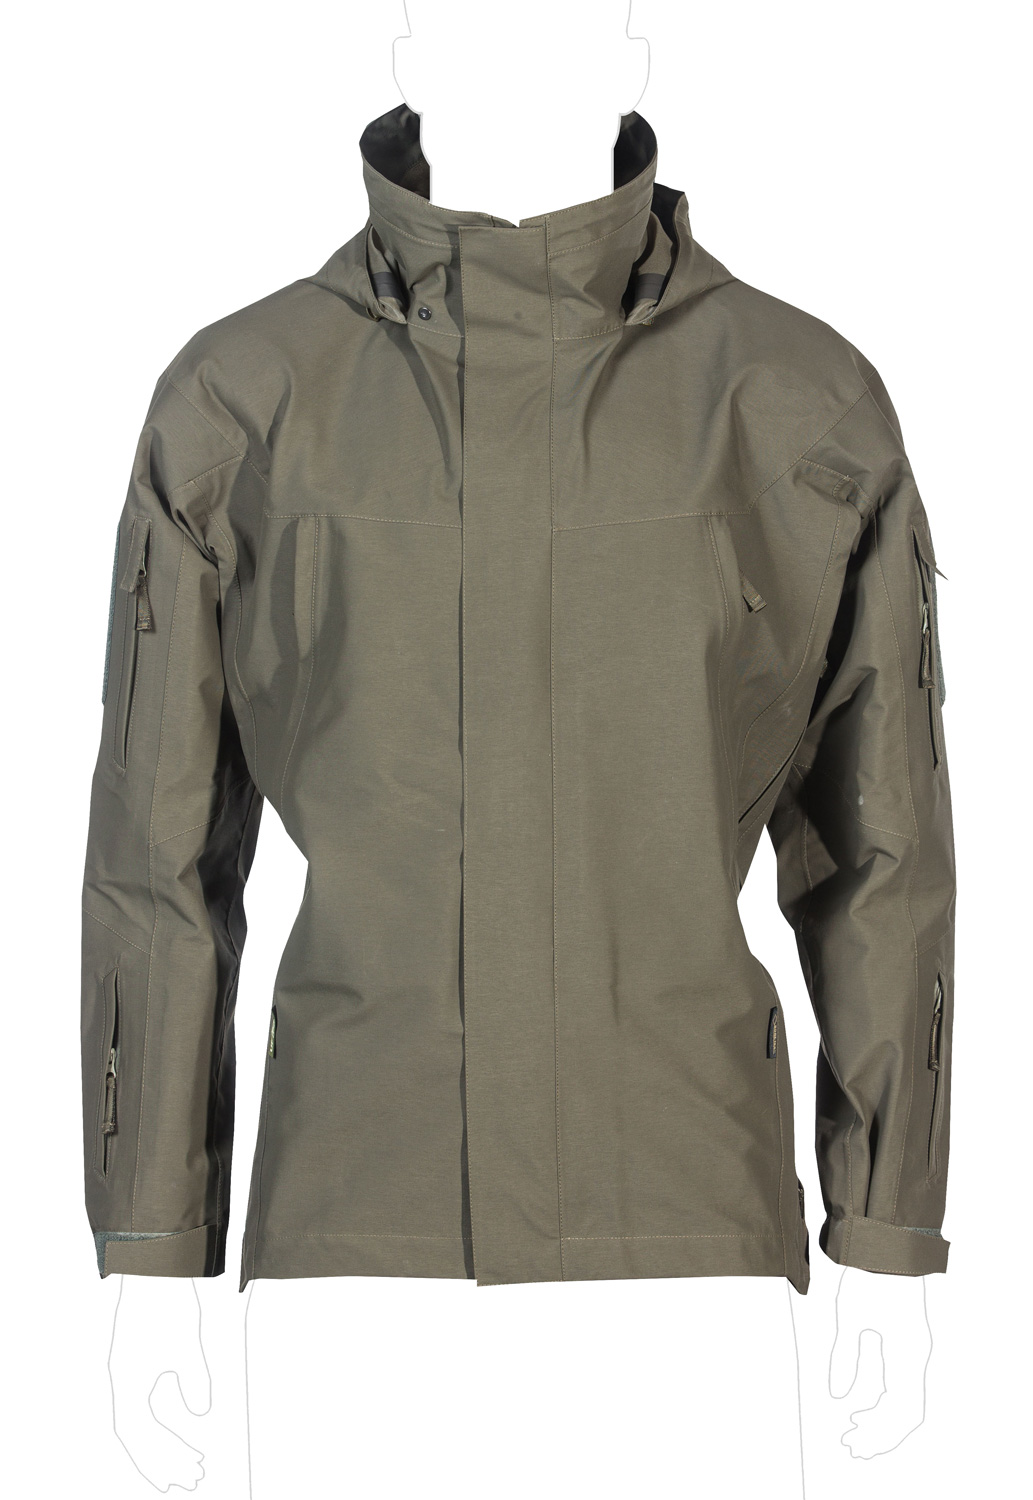 Monsoon XT Gen 2 Jacket